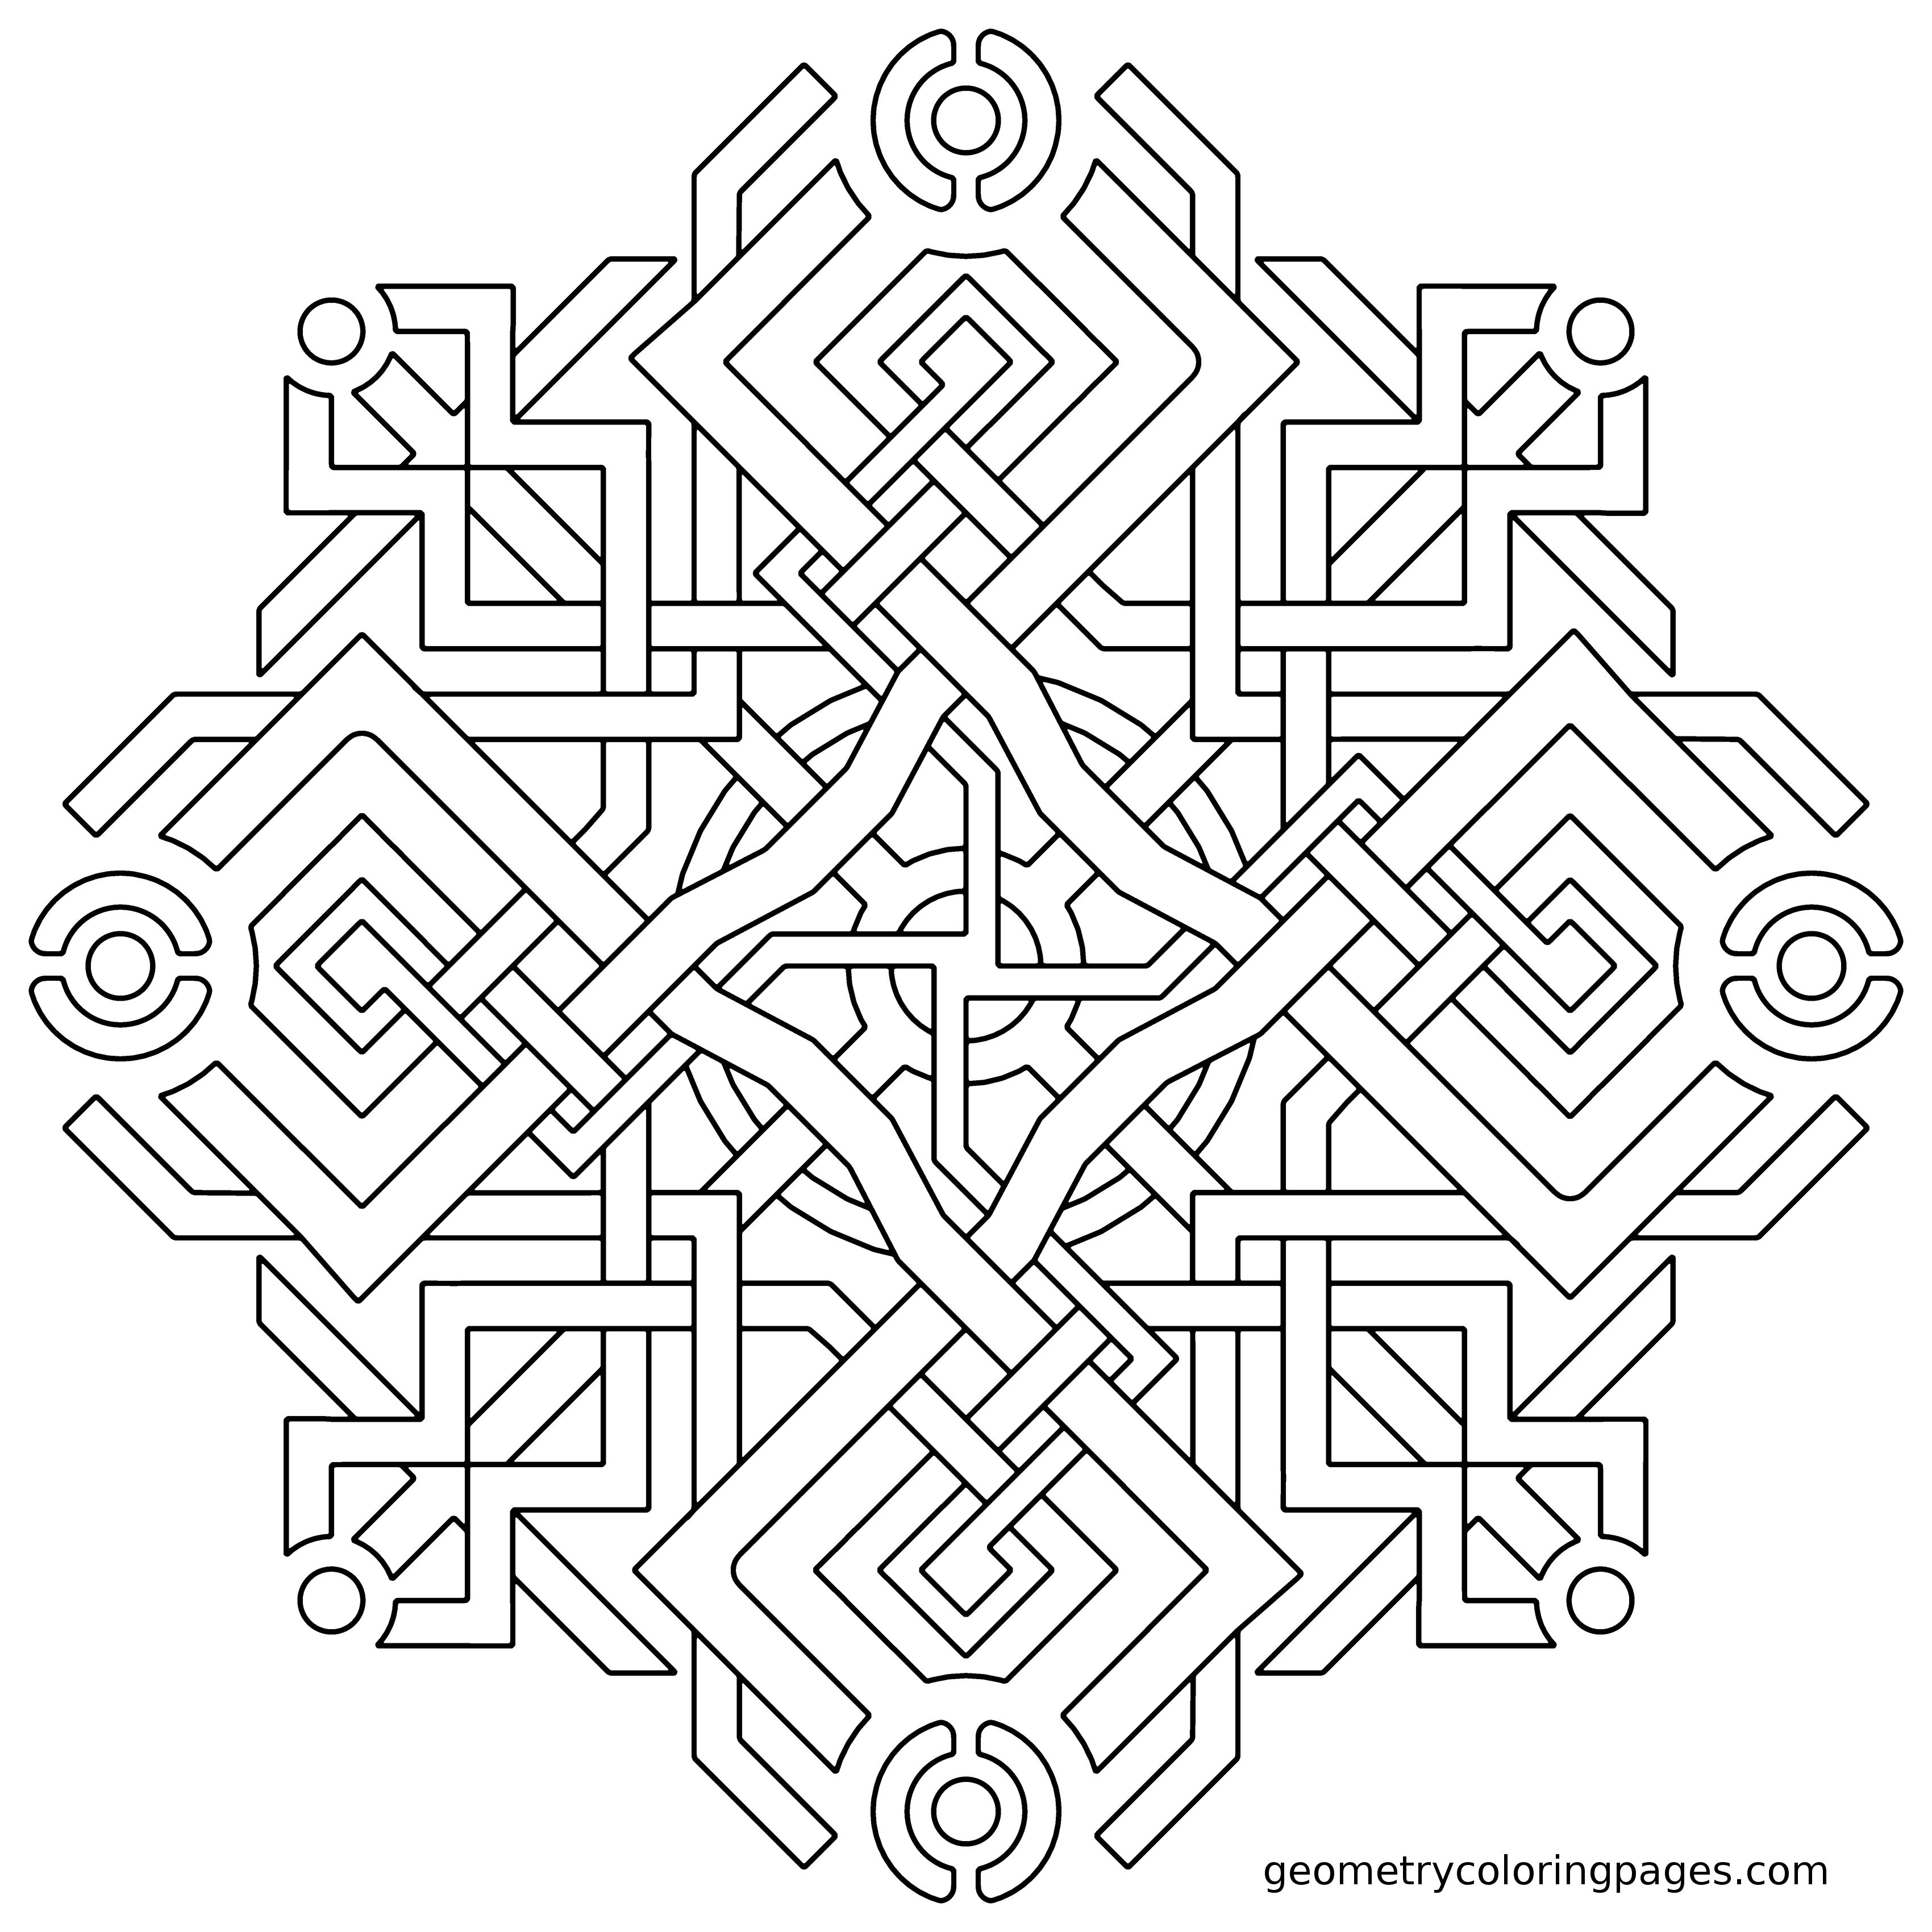 Coloring Page Fuzzy Logic From Geometrycoloringpages